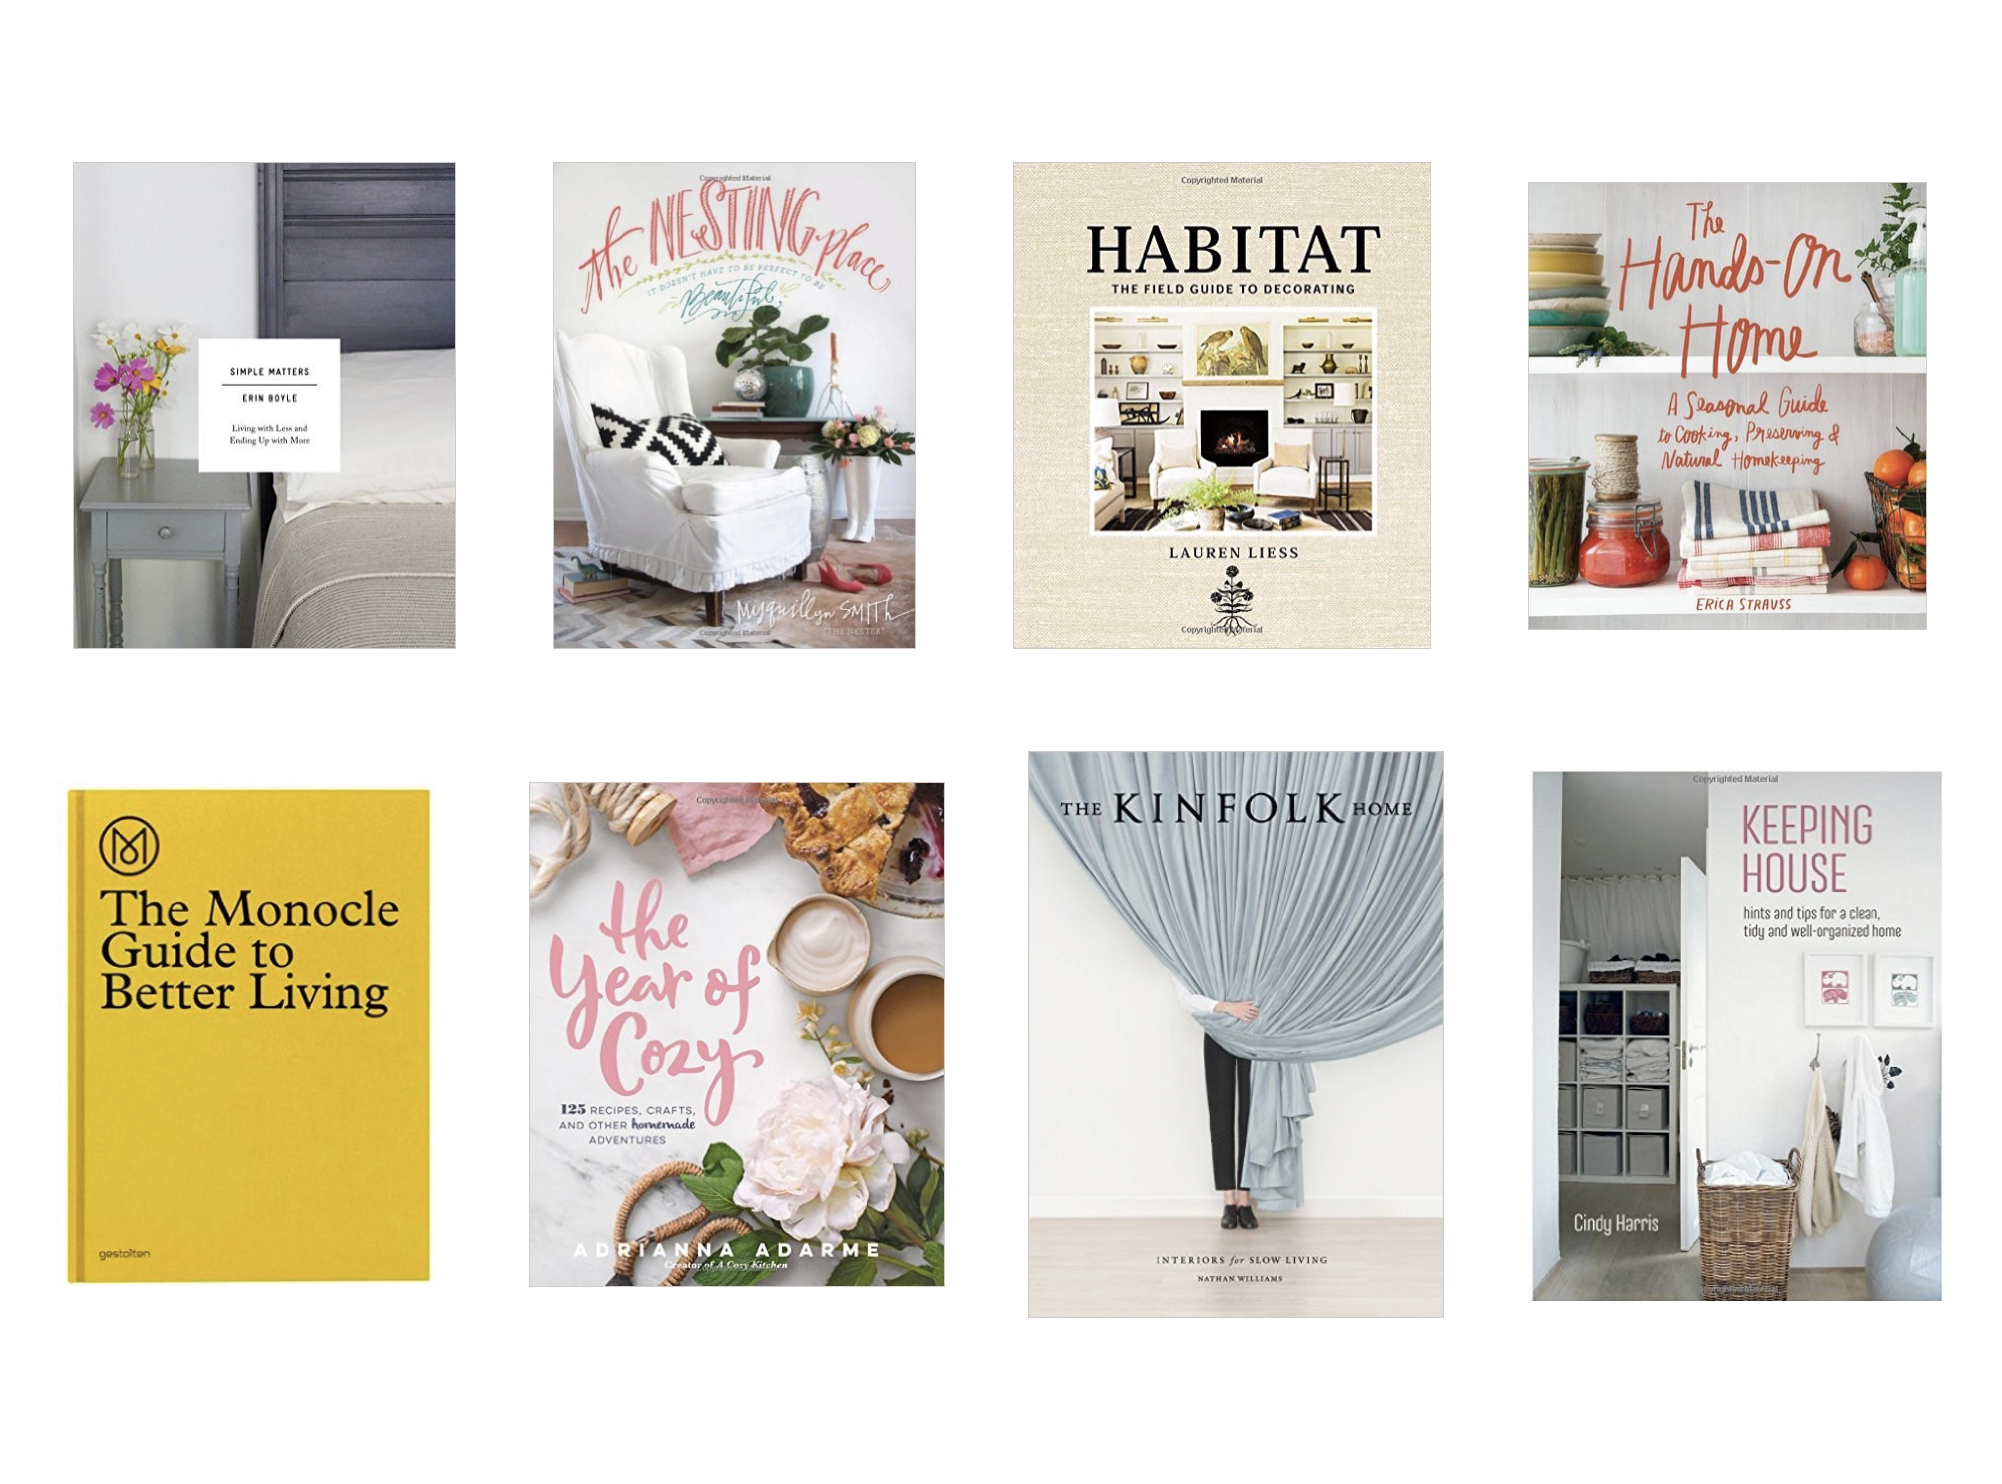 Simple Matters ,  The Nesting Place ,  Habitat ,  The Hands-On Home ,  The Monocle Guide to Better Living ,  The Year of Cozy ,  The Kinfolk Home ,  Keeping House